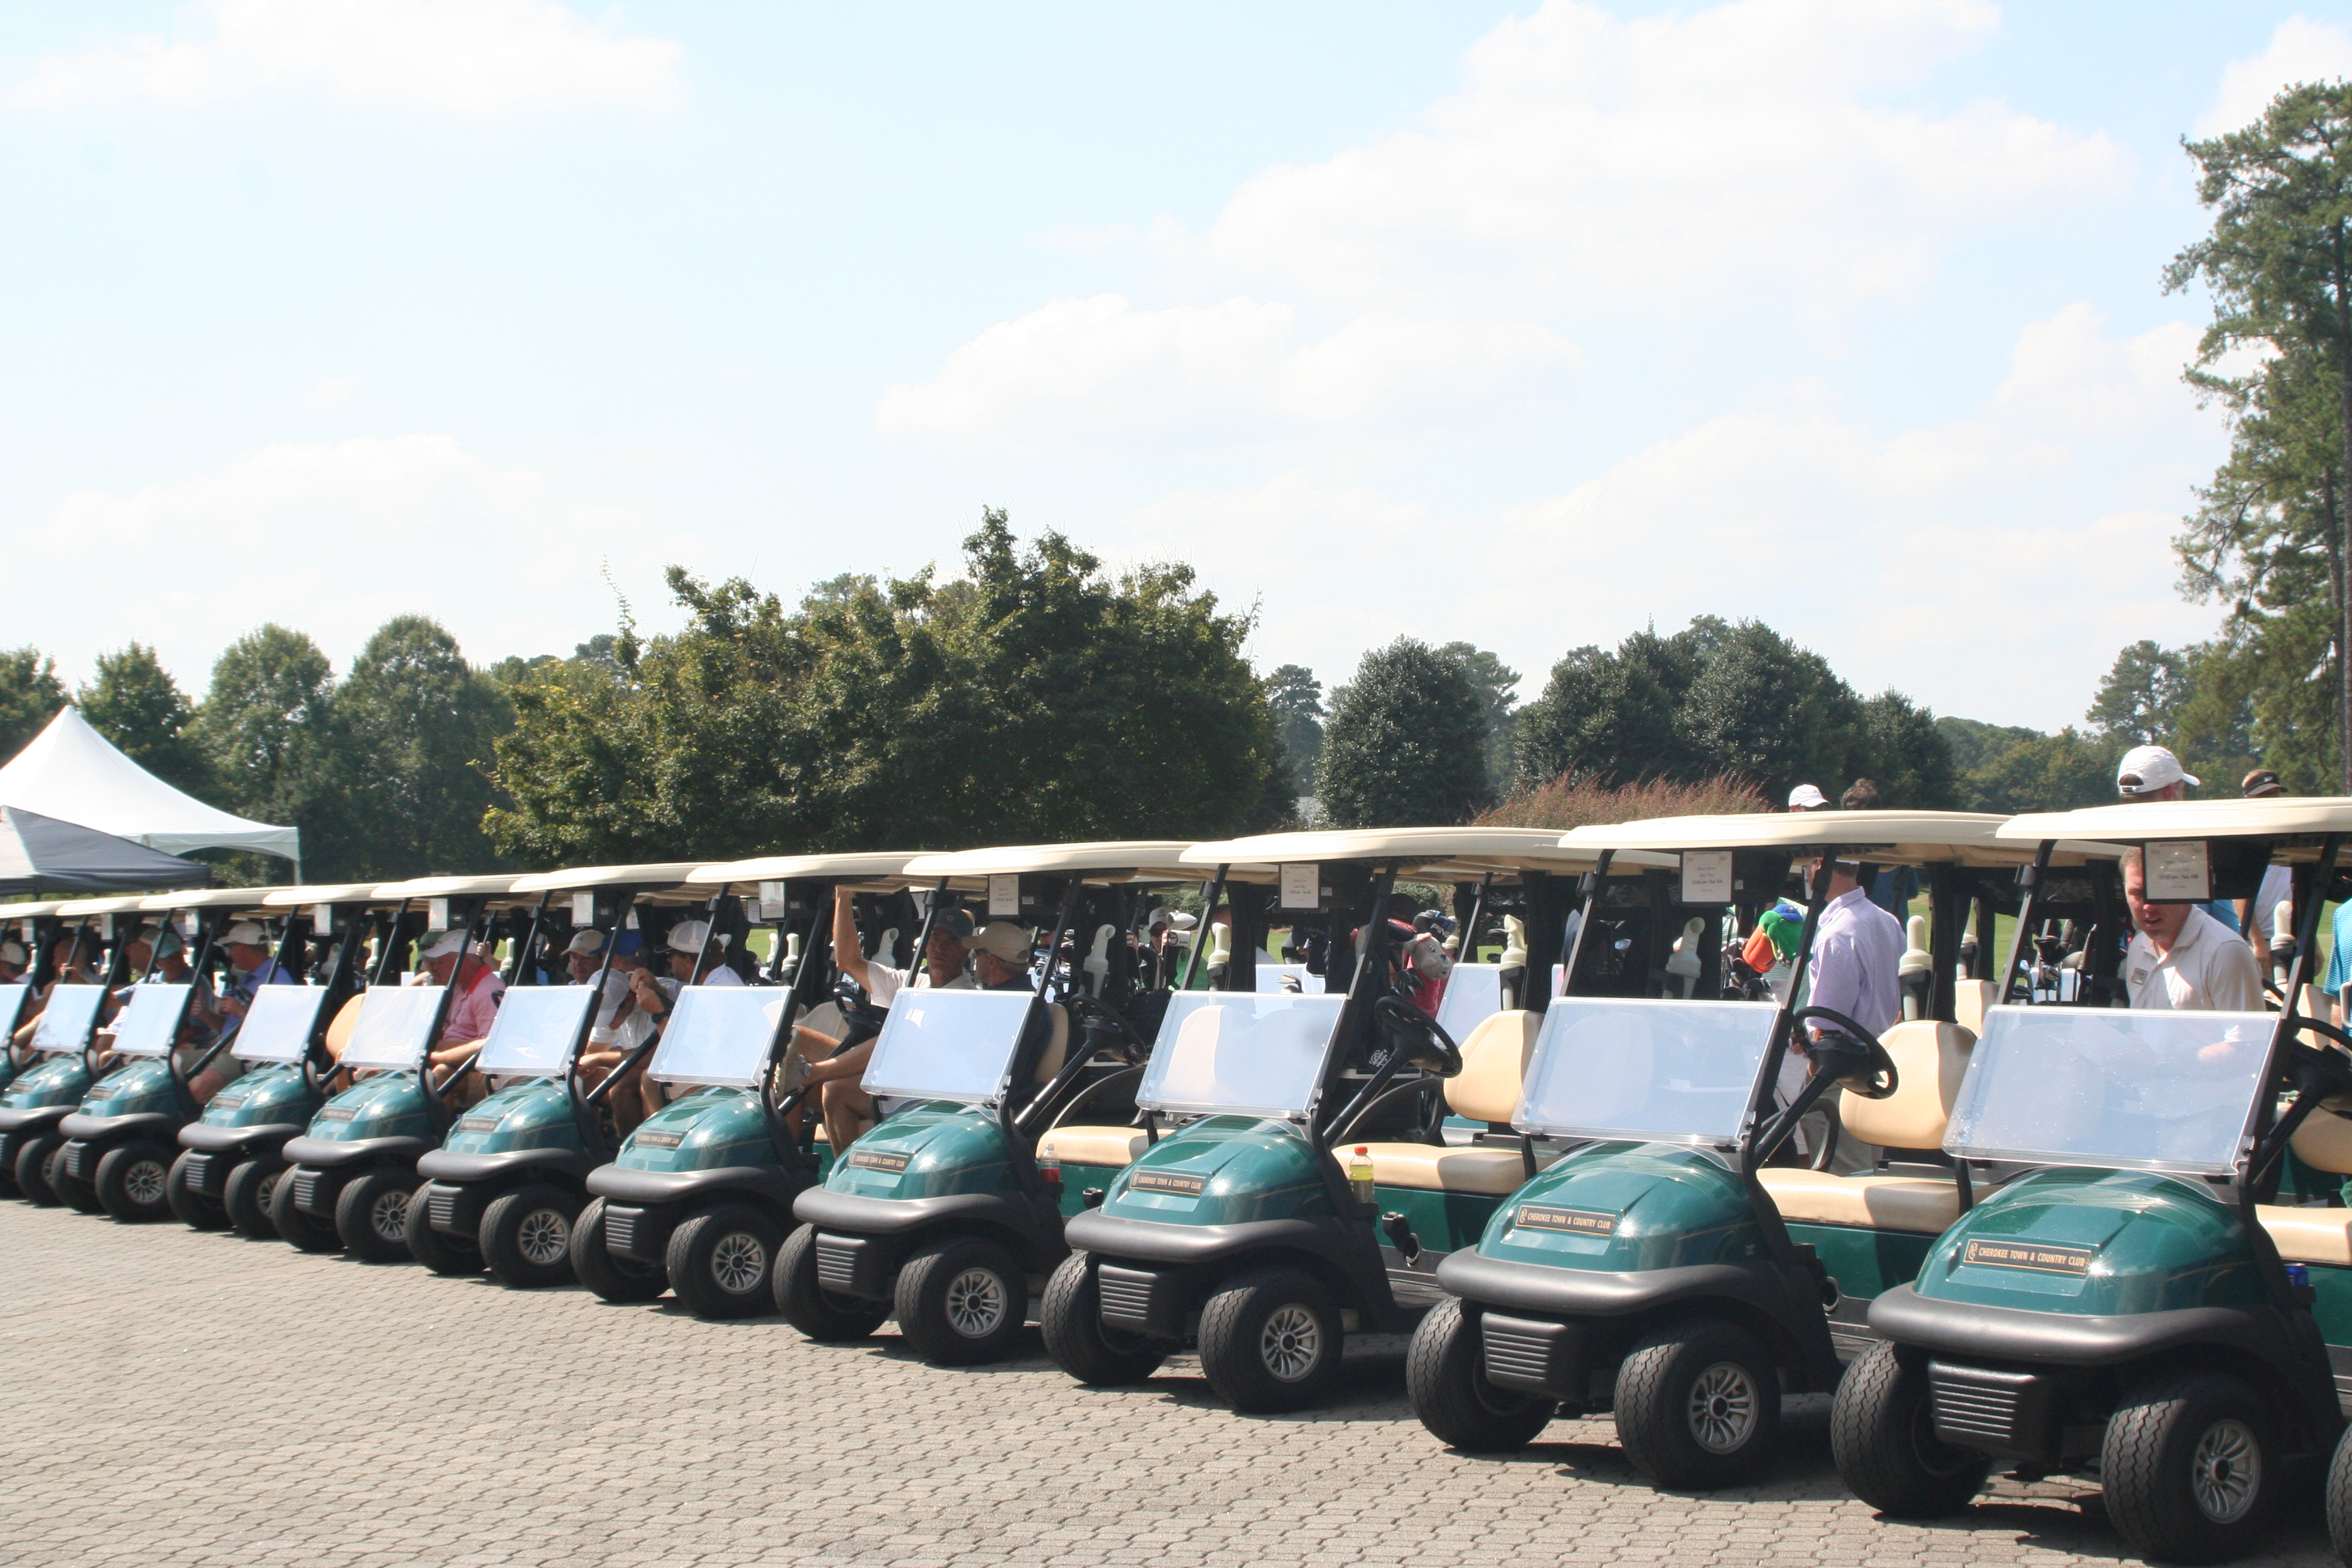 Golf carts lined up at largest charity golf tournament in Atlanta